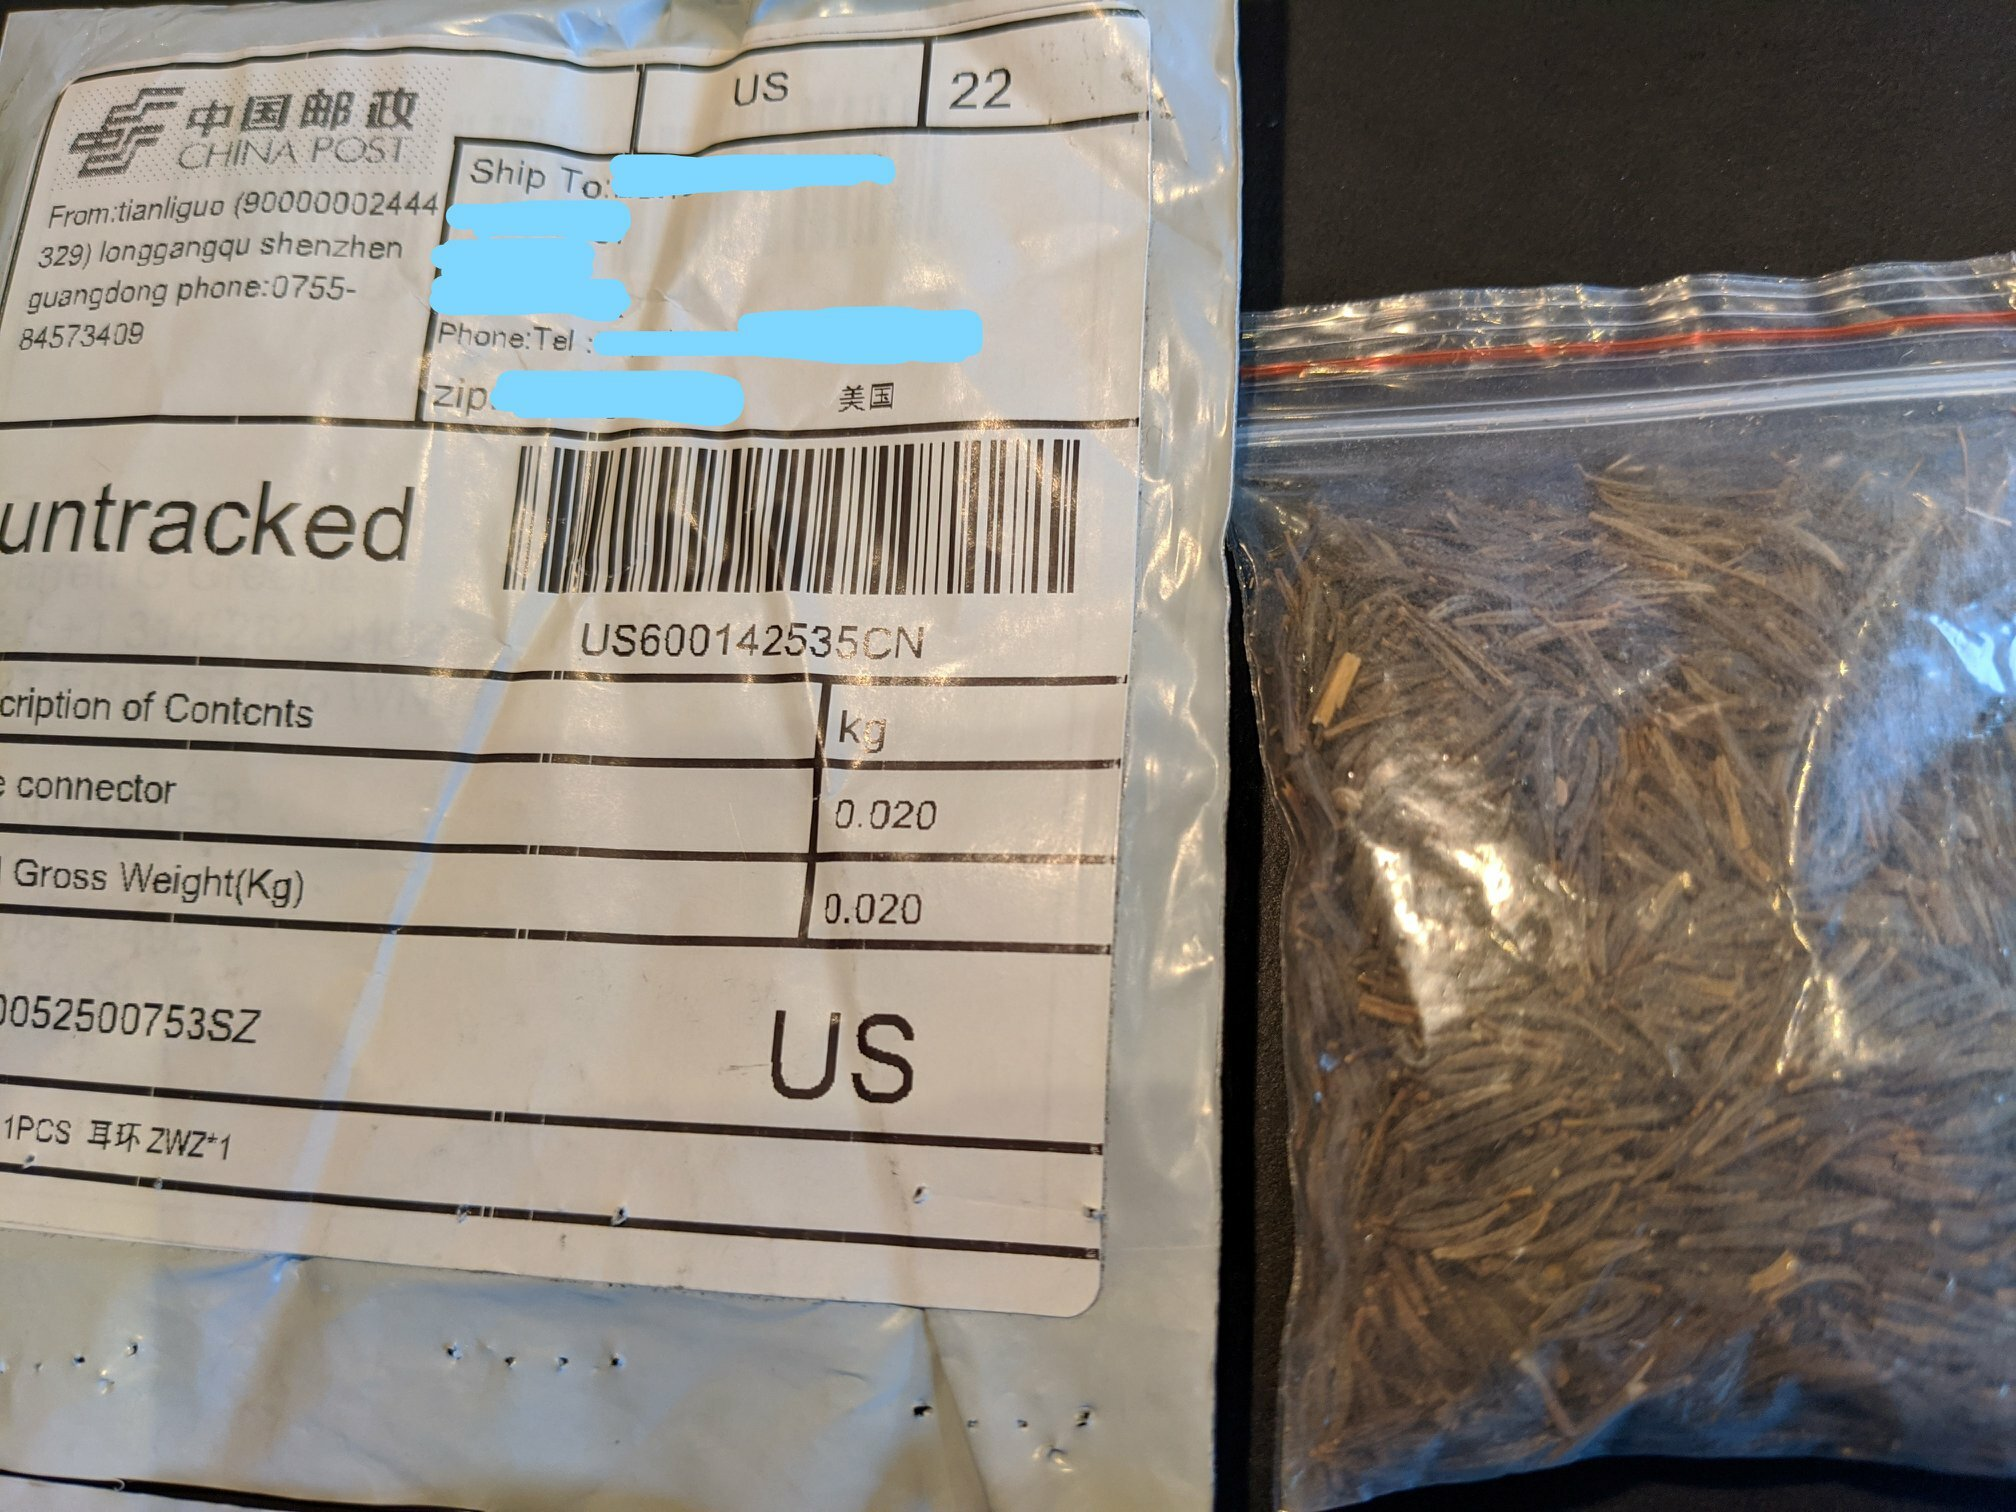 New York State residents have reported receiving mysterious seeds from China.